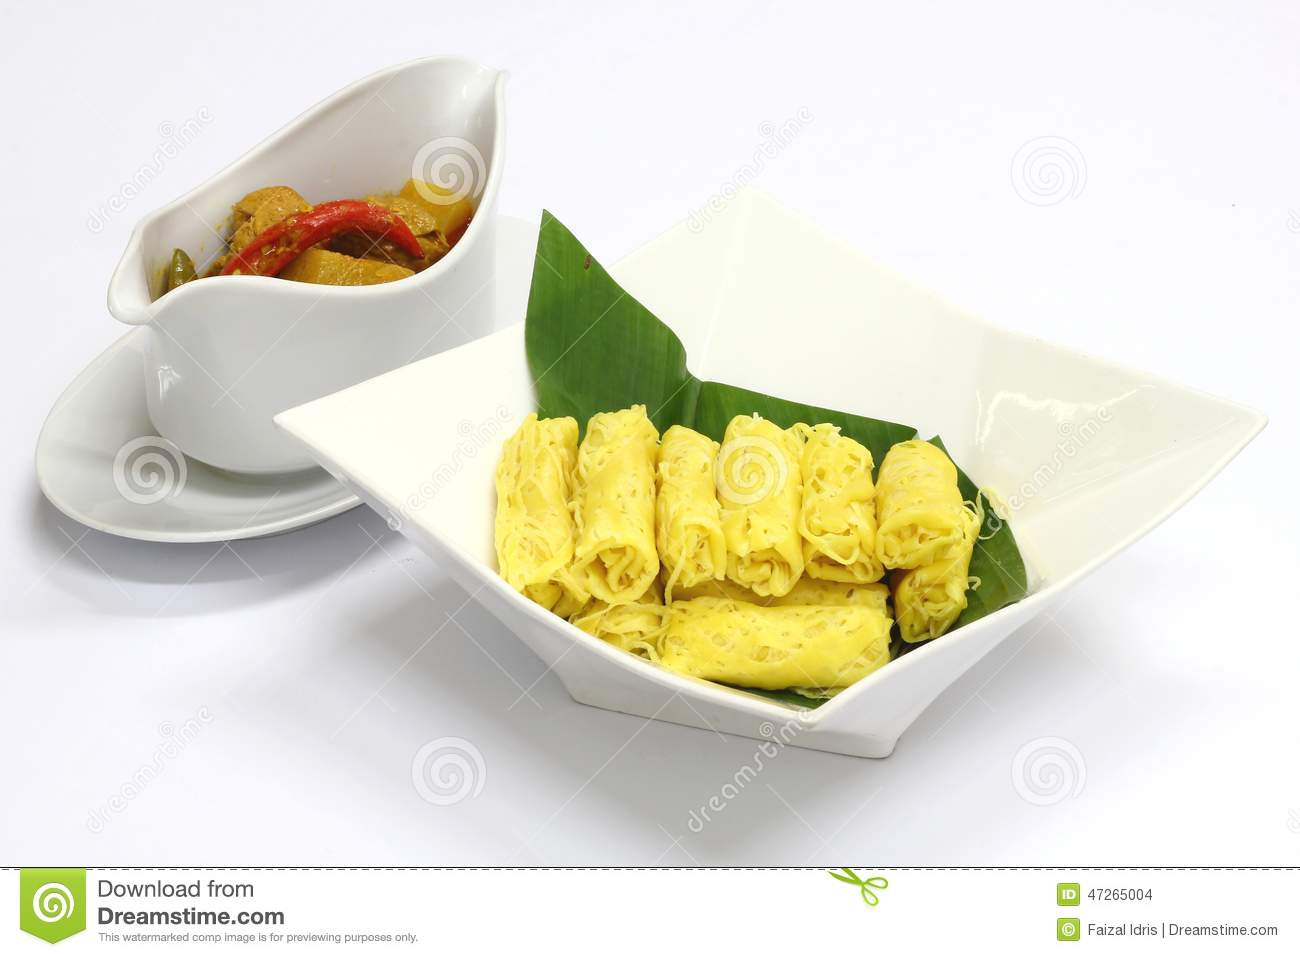 popular Malaysian savoury snack Roti Jala served with Chicken Curry.